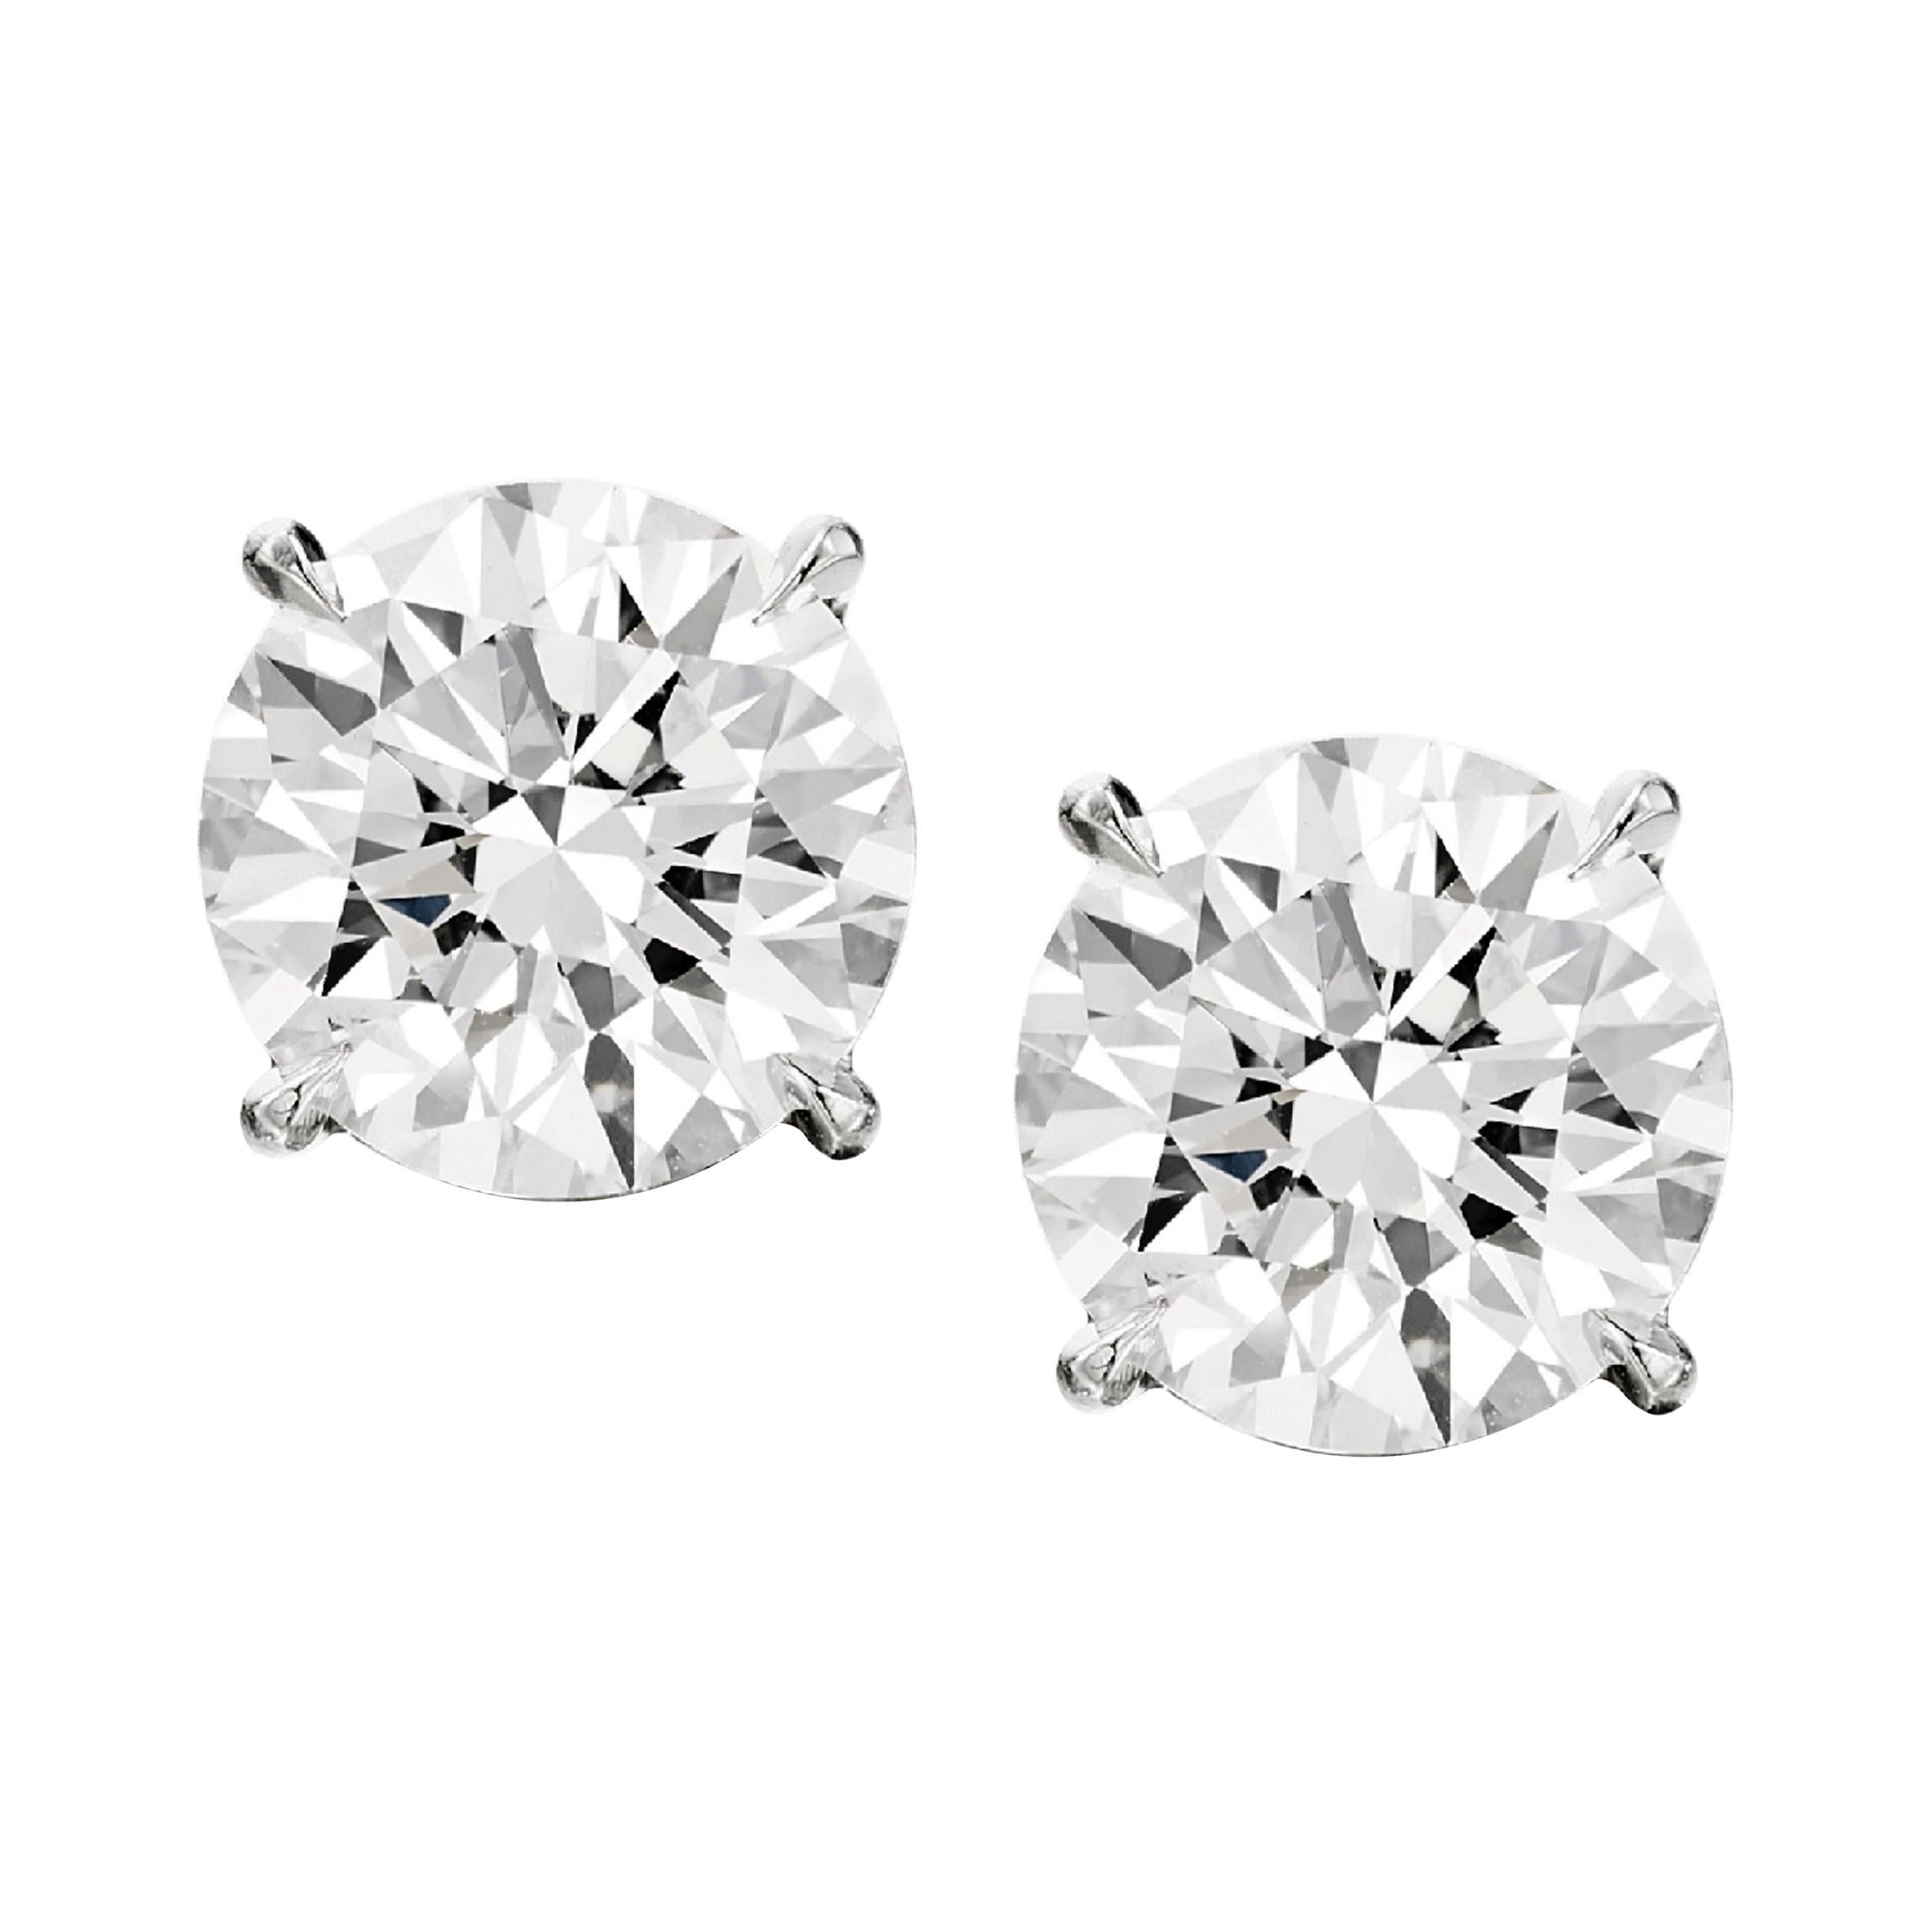 Flawless GIA Certified 4 Carat Round Brilliant Cut Diamond Studs